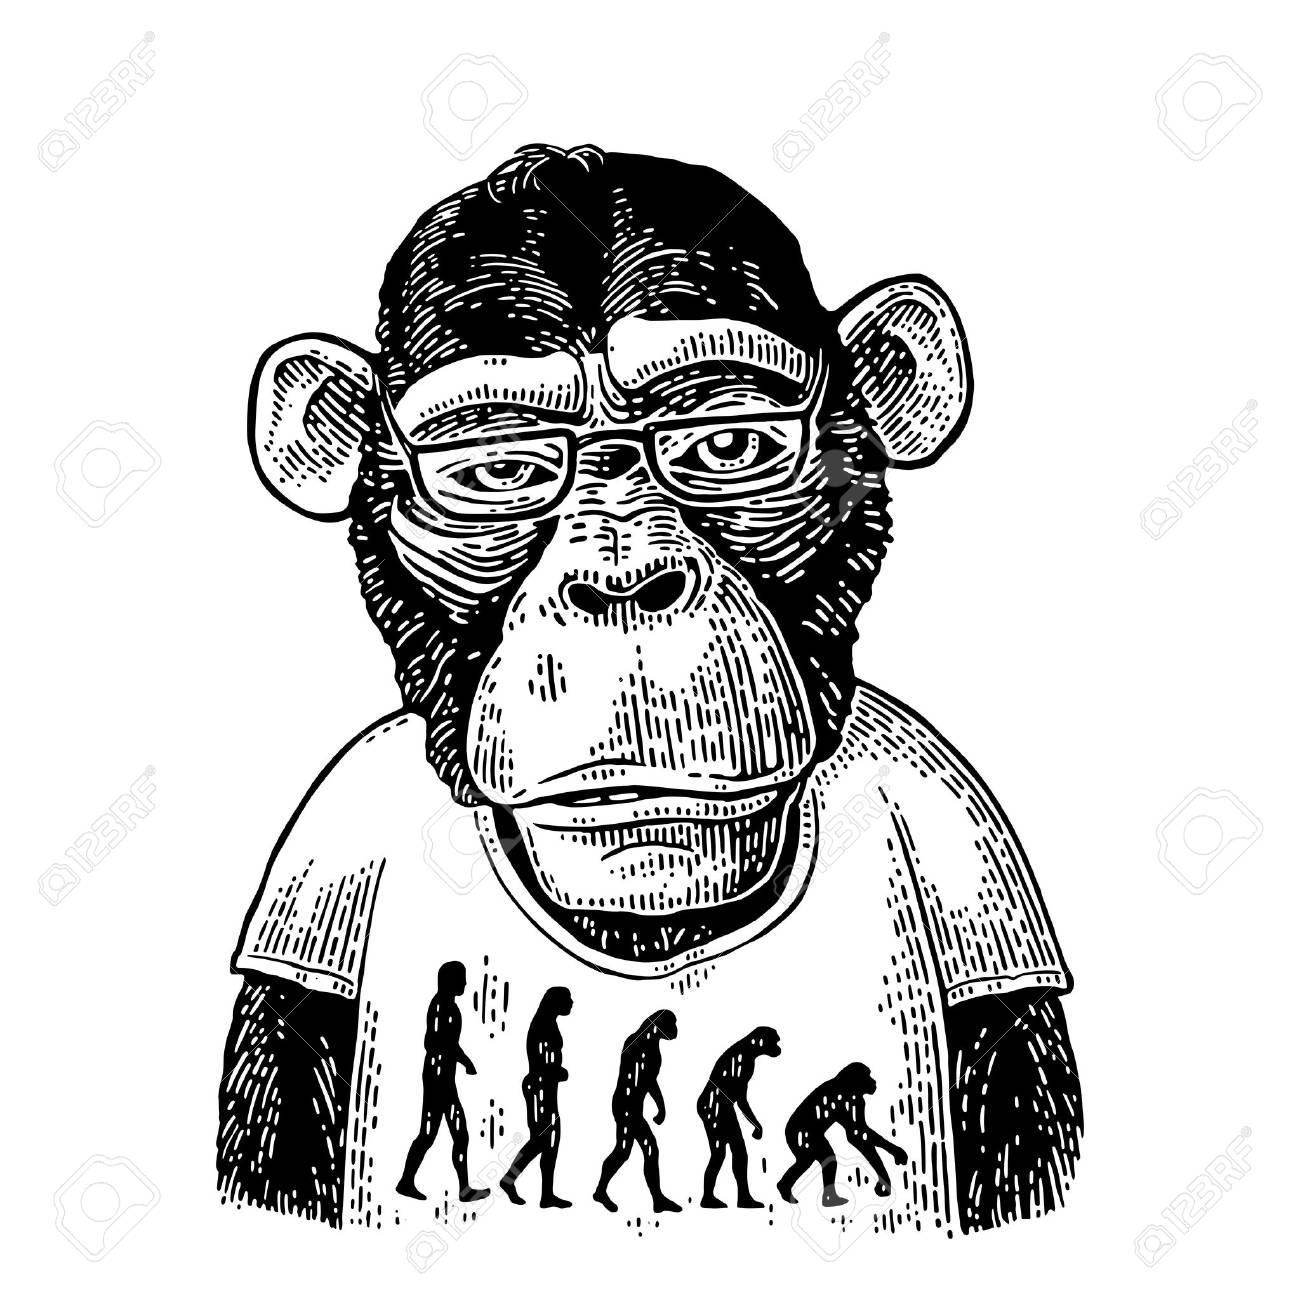 Monkeys in a T-shirt with the theory of evolution on the contrary. - 77406023